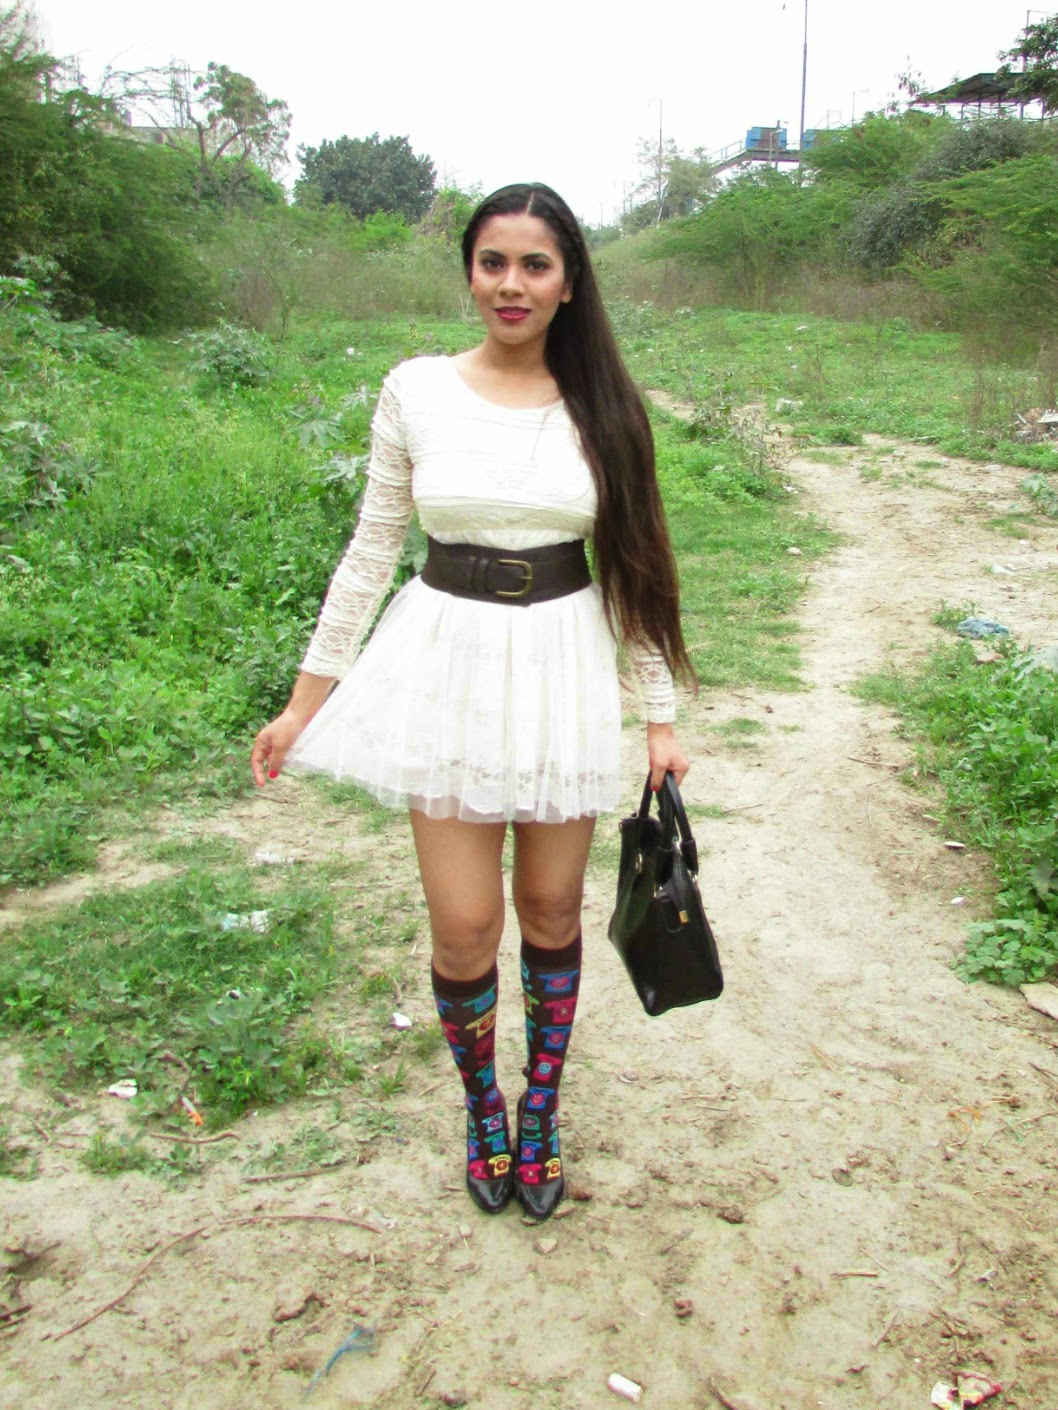 socks, fashion, fashion socks, telephone socks, indiacircus, how to style knee high socks, trunk call socks, spring outfit, how to style broad belts,white dress, indian fashion blog, indian blog, indianbeautyblog, indiacircus socks,how to style shorts for winter, indiacircus, shorts, lotus shorts, cotton printed shorts, cheap shorts india online, lilac makeup, indiacircus review, ankle boots, colorful shorts, comfortable shorts, modern indian print, fusion shorts, indian fashion blog, Statement necklace, necklace, statement necklaces, big necklace, heavy necklaces , gold necklace, silver necklace, silver statement necklace, gold statement necklace, studded statement necklace , studded necklace, stone studded necklace, stone necklace, stove studded statement necklace, stone statement necklace, stone studded gold statement necklace, stone studded silver statement necklace, black stone necklace, black stone studded statement necklace, black stone necklace, black stone statement necklace, neon statement necklace, neon stone statement necklace, black and silver necklace, black and gold necklace, blank and silver statement necklace, black and gold statement necklace, silver jewellery, gold jewellery, stove jewellery, stone studded jewellery, imitation jewellery, artificial jewellery, junk jewellery, cheap jewellery ,indiacircus Statement necklace, indiacircus necklace, indiacircus statement necklaces,indiacircus big necklace, indiacircus heavy necklaces , indiacircus gold necklace, indiacircus silver necklace, indiacircus silver statement necklace,indiacircus gold statement necklace, indiacircus studded statement necklace , indiacircus studded necklace, indiacircus stone studded necklace, indiacircus stone necklace, indiacircus stove studded statement necklace, indiacircus stone statement necklace, indiacircus stone studded gold statement necklace, indiacircus stone studded silver statement necklace, indiacircus black stone necklace, indiacircus black stone studded statement necklace, indiacircus black stone necklace, indiacircus black stone statement necklace, indiacircus neon statement necklace, indiacircus neon stone statement necklace, indiacircus black and silver necklace, indiacircus black and gold necklace, indiacircus black and silver statement necklace, indiacircus black and gold statement necklace, silver jewellery, indiacircus gold jewellery, eyeboxs stove jewellery, indiacircus stone studded jewellery, indiacircus imitation jewellery, indiacircus artificial jewellery, indiacircus junk jewellery, indiacircus cheap jewellery ,Cheap Statement necklace, Cheap necklace, Cheap statement necklaces,Cheap big necklace, Cheap heavy necklaces , Cheap gold necklace, Cheap silver necklace, Cheap silver statement necklace,Cheap gold statement necklace, Cheap studded statement necklace , Cheap studded necklace, Cheap stone studded necklace, Cheap stone necklace, Cheap stove studded statement necklace, Cheap stone statement necklace, Cheap stone studded gold statement necklace, Cheap stone studded silver statement necklace, Cheap black stone necklace, Cheap black stone studded statement necklace, Cheap black stone necklace, Cheap black stone statement necklace, Cheap neon statement necklace, Cheap neon stone statement necklace, Cheap black and silver necklace, Cheap black and gold necklace, Cheap black and silver statement necklace, Cheap black and gold statement necklace, silver jewellery, Cheap gold jewellery, Cheap stove jewellery, Cheap stone studded jewellery, Cheap imitation jewellery, Cheap artificial jewellery, Cheap junk jewellery, Cheap cheap jewellery , Black pullover, black and grey pullover, black and white pullover, back cutout, back cutout pullover, back cutout sweater, back cutout jacket, back cutout top, back cutout tee, back cutout tee shirt, back cutout shirt, back cutout dress, back cutout trend, back cutout summer dress, back cutout spring dress, back cutout winter dress, High low pullover, High low sweater, High low jacket, High low top, High low tee, High low tee shirt, High low shirt, High low dress, High low trend, High low summer dress, High low spring dress, High low winter dress,indiacircus Black pullover, indiacircus black and grey pullover, indiacircus black and white pullover, indiacircus back cutout, indiacircus back cutout pullover, indiacircus back cutout sweater, indiacircus back cutout jacket, indiacircus back cutout top, indiacircus back cutout tee, indiacircus back cutout tee shirt, indiacircus back cutout shirt, indiacircus back cutout dress, I indiacircus back cutout trend, indiacircus back cutout summer dress, indiacircus back cutout spring dress, indiacircus back cutout winter dress, indiacircus High low pullover, indiacircus High low sweater, indiacircus High low jacket, indiacircus High low top, indiacircus High low tee, indiacircus High low tee shirt, indiacircus High low shirt, indiacircus High low dress, indiacircus High low trend, indiacircus High low summer dress, indiacircus High low spring dress, indiacircus High low winter dress, Cropped, cropped tee,cropped tee shirt , cropped shirt, cropped sweater, cropped pullover, cropped cardigan, cropped top, cropped tank top, Cheap Cropped, cheap cropped tee,cheap cropped tee shirt ,cheap cropped shirt, cheap cropped sweater, cheap cropped pullover, cheap cropped cardigan,cheap cropped top, cheap cropped tank top,eyeboxs Cropped, indiacircus cropped tee, indiacircus cropped tee shirt , indiacircus cropped shirt, indiacircus cropped sweater, indiacircus cropped pullover, indiacircus cropped cardigan, indiacircus cropped top, indiacircus cropped top, winter Cropped, winter cropped tee, winter cropped tee shirt , winter cropped shirt, winter cropped sweater, winter cropped pullover, winter cropped cardigan, winter cropped top, winter cropped tank top,Leggings, winter leggings, warm leggings, winter warm leggings, fall leggings, fall warm leggings, tights, warm tights, winter tights, winter warm tights, fall tights, fall warm tights,indiacircus leggings, indiacircus tights, warm warm leggings, indiacircus warm tights, indiacircus winter warm tights, indiacircus fall warm tights, woollen tights , woollen leggings, eyeboxs woollen tights, indiacircus woollen leggings, woollen bottoms, indiacircus woollen bottoms, indiacircus woollen pants, woollen pants,Christmas , Christmas leggings, Christmas tights, lovelyshoes Christmas, lovelyshoes Christmas clothes, clothes for Christmas , eyeboxs Christmas leggings, eyeboxs Christmas tights, eyeboxs warm Christmas leggings, eyeboxs warm Christmas tights, eyeboxs snowflake leggings, snowflake leggings, snowflake tights, eyeboxs rain deer tights, eyeboxs rain deer leggings, ugly Christmas sweater, Christmas tree, Christmas clothes, Santa clause,Wishlist, clothes wishlist, indiacircus wishlist, indiacircus, indiacircus.net , indiacircus wishlist, autumn wishlist,autumn indiacircus wishlist, indiacircus.com,autumn clothes wishlist, autumn shoes wishlist, autumn bags wishlist, autumn boots wishlist, autumn pullovers wishlist, autumn cardigans wishlist, autymn coats wishlist, indiacircus clothes wishlist, indiacircus bags wishlist, indiacircus bags wishlist, indiacircus boots wishlist, indiacircus pullover wishlist, indiacircus cardigans wishlist, indiacircus autum clothes wishlist, winter clothes, wibter clothes wishlist, winter wishlist, wibter pullover wishlist, winter bags wishlist, winter boots wishlist, winter cardigans wishlist, winter leggings wishlist, indiacircus winter clothes, indiacircus autumn clothes, indiacircus winter collection,indiacircus autumn collection,Cheap clothes online,cheap dresses online, cheap jumpsuites online, cheap leggings online, cheap shoes online, cheap wedges online , cheap skirts online, cheap jewellery online, cheap jackets online, cheap jeans online, cheap maxi online, cheap makeup online, cheap cardigans online, cheap accessories online, cheap coats online,cheap brushes online,cheap tops online, chines clothes online, Chinese clothes,Chinese jewellery ,Chinese jewellery online,Chinese heels online,Chinese electronics online,Chinese garments,Chinese garments online,Chinese products,Chinese products online,Chinese accessories online,Chinese inline clothing shop,Chinese online shop,Chinese online shoes shop,Chinese online jewellery shop,Chinese cheap clothes online,Chinese clothes shop online, korean online shop,korean garments,korean makeup,korean makeup shop,korean makeup online,korean online clothes,korean online shop,korean clothes shop online,korean dresses online,korean dresses online,cheap Chinese clothes,cheap korean clothes,cheap Chinese makeup,cheap korean makeup,cheap korean shopping ,cheap Chinese shopping,cheap Chinese online shopping,cheap korean online shopping,cheap Chinese shopping website,cheap korean shopping website, cheap online shopping,online shopping,how to shop online ,how to shop clothes online,how to shop shoes online,how to shop jewellery online,how to shop mens clothes online, mens shopping online,boys shopping online,boys jewellery online,mens online shopping,mens online shopping website,best Chinese shopping website, Chinese online shopping website for men,best online shopping website for women,best korean online shopping,best korean online shopping website,korean fashion,korean fashion for women,korean fashion for men,korean fashion for girls,korean fashion for boys,best chinese online shopping,best chinese shopping website,best chinese online shopping website,wholesale chinese shopping website,wholesale shopping website,chinese wholesale shopping online,chinese wholesale shopping, chinese online shopping on wholesale prices, clothes on wholesale prices,cholthes on wholesake prices,clothes online on wholesales prices,online shopping, online clothes shopping, online jewelry shopping,how to shop online, how to shop clothes online, how to shop earrings online, how to shop,skirts online, dresses online,jeans online, shorts online, tops online, blouses online,shop tops online, shop blouses online, shop skirts online, shop dresses online, shop botoms online, shop summer dresses online, shop bracelets online, shop earrings online, shop necklace online, shop rings online, shop highy low skirts online, shop sexy dresses onle, men's clothes online, men's shirts online,men's jeans online, mens.s jackets online, mens sweaters online, mens clothes, winter coats online, sweaters online, cardigens online,beauty , fashion,beauty and fashion,beauty blog, fashion blog , indian beauty blog,indian fashion blog, beauty and fashion blog, indian beauty and fashion blog, indian bloggers, indian beauty bloggers, indian fashion bloggers,indian bloggers online, top 10 indian bloggers, top indian bloggers,top 10 fashion bloggers, indian bloggers on blogspot,home remedies, how to,indiacircus online shopping,indiacircus online shopping review,indiacircus.com review,indiacircus online clothing store,indiacircus online chinese store,indiacircus online shopping,indiacircus site review,indiacircus.com site review, indiacircus Chines fashion, indiacircus , indiacircus.com, indiacircus clothing, indiacircus dresses, indiacircus shoes, indiacircus accessories,indiacircus men cloths ,indiacircus makeup, indiacircus helth products,indiacircus Chinese online shopping, indiacircus Chinese store, indiacircus online chinese shopping, indiacircus lchinese shopping online,indiacircus, indiacircus dresses, indiacircus clothes, indiacircus garments, indiacircus clothes, indiacircus skirts, indiacircus pants, indiacircus tops, indiacircus cardigans, indiacircus leggings, indiacircus fashion , indiacircus clothes fashion, indiacircus footwear, indiacircus fashion footwear, indiacircus jewellery, indiacircus fashion jewellery, indiacircus rings, indiacircus necklace, indiacircus bracelets, indiacircus earings,Autumn, fashion, indiacircus, wishlist,Winter,fall, fall abd winter, winter clothes , fall clothes, fall and winter clothes, fall jacket, winter jacket, fall and winter jacket, fall blazer, winter blazer, fall and winter blazer, fall coat , winter coat, falland winter coat, fall coverup, winter coverup, fall and winter coverup, outerwear, coat , jacket, blazer, fall outerwear, winter outerwear, fall and winter outerwear, woolen clothes, wollen coat, woolen blazer, woolen jacket, woolen outerwear, warm outerwear, warm jacket, warm coat, warm blazer, warm sweater, coat , white coat, white blazer, white coat, white woolen blazer, white coverup, white woolens, indiacircus online shopping review,indiacircus.com review,indiacircus online clothing store,indiacircus online chinese store,indiacircus online shopping,indiacircus site review, indiacircus.com site review, indiacircus Chines fashion, indiacircus, indiacircus.com, indiacircus clothing, indiacircus dresses, indiacircus shoes, indiacircus accessories,indiacircus men cloths ,indiacircus makeup, indiacircus helth products,indiacircus Chinese online shopping, indiacircus Chinese store, indiacircus online chinese shopping, indiacircus chinese shopping online,indiacircus, indiacircus dresses, indiacircus clothes, indiacircus garments, indiacircus clothes, indiacircus skirts, indiacircus pants, indiacircus tops, indiacircus cardigans, indiacircus leggings, indiacircus fashion , indiacircus clothes fashion, indiacircus footwear, indiacircus fashion footwear, indiacircus jewellery, indiacircus fashion jewellery, indiacircus rings, indiacircus necklace, indiacircus bracelets, indiacircus earings,latest fashion trends online, online shopping, online shopping in india, online shopping in india from america, best online shopping store , best fashion clothing store, best online fashion clothing store, best online jewellery store, best online footwear store, best online store, beat online store for clothes, best online store for footwear, best online store for jewellery, best online store for dresses, worldwide shipping free, free shipping worldwide, online store with free shipping worldwide,best online store with worldwide shipping free,low shipping cost, low shipping cost for shipping to india, low shipping cost for shipping to asia, low shipping cost for shipping to korea,Friendship day , friendship's day, happy friendship's day, friendship day outfit, friendship's day outfit, how to wear floral shorts, floral shorts, styling floral shorts, how to style floral shorts, how to wear shorts, how to style shorts, how to style style denim shorts, how to wear denim shorts,how to wear printed shorts, how to style printed shorts, printed shorts, denim shorts, how to style black shorts, how to wear black shorts, how to wear black shorts with black T-shirts, how to wear black T-shirt, how to style a black T-shirt, how to wear a plain black T-shirt, how to style black T-shirt,how to wear shorts and T-shirt, what to wear with floral shorts, what to wear with black floral shorts,how to wear all black outfit, what to wear on friendship day, what to wear on a date, what to wear on a lunch date, what to wear on lunch, what to wear to a friends house, what to wear on a friends get together, what to wear on friends coffee date , what to wear for coffee,beauty,Pink, pink pullover, pink sweater, pink jumpsuit, pink sweatshirt, neon pink, neon pink sweater, neon pink pullover, neon pink jumpsuit , neon pink cardigan, cardigan , pink cardigan, sweater, jumper, jumpsuit, pink jumper, neon pink jumper, pink jacket, neon pink jacket, winter clothes, oversized coat, oversized winter clothes, oversized pink coat, oversized coat, oversized jacket, indiacircus pink, indiacircus pink sweater, indiacircus pink jacket, indiacircus pink cardigan, indiacircus pink coat, indiacircus pink jumper, indiacircus neon pink, indiacircus neon pink jacket, indiacircus neon pink coat, indiacircus neon pink sweater, indiacircus neon pink jumper, indiacircus neon pink pullover, pink pullover, neon pink pullover,fur,furcoat,furjacket,furblazer,fur pullover,fur cardigan,front open fur coat,front open fur jacket,front open fur blazer,front open fur pullover,front open fur cardigan,real fur, real fur coat,real fur jacket,real fur blazer,real fur pullover,real fur cardigan, soft fur,soft fur coat,soft fur jacket,soft furblazer,soft fur pullover,sof fur cardigan, white fur,white fur coat,white fur jacket,white fur blazer, white fur pullover, white fur cardigan,trench, trench coat, trench coat online, trench coat india, trench coat online India, trench cost price, trench coat price online, trench coat online price, cheap trench coat, cheap trench coat online, cheap trench coat india, cheap trench coat online India, cheap trench coat , Chinese trench coat, Chinese coat, cheap Chinese trench coat, Korean coat, Korean trench coat, British coat, British trench coat, British trench coat online, British trench coat online, New York trench coat, New York trench coat online, cheap new your trench coat, American trench coat, American trench coat online, cheap American trench coat, low price trench coat, low price trench coat online , low price trench coat online india, low price trench coat india, indiacircus trench, indiacircus trench coat, indiacircus trench coat online, indiacircus trench coat india, indiacircus trench coat online India, indiacircus trench cost price,indiacircus trench coat price online, indiacircus trench coat online price, indiacircus cheap trench coat, indiacircus indiacircus trench coat online, indiacircus cheap trench coat india, indiacircus cheap trench coat online India, indiacircus cheap trench coat , indiacircus Chinese trench coat, indiacircus Chinese coat, indiacircus cheap Chinese trench coat, indiacircus Korean coat, indiacircus Korean trench coat, indiacircus British coat, indiacircus British trench coat, indiacircus British trench coat online, indiacircus British trench coat online, indiacircus New York trench coat, indiacircus New York trench coat online, indiacircus cheap new your trench coat, indiacircus American trench coat, indiacircus American trench coat online, indiacircus cheap American trench coat, indiacircus low price trench coat, indiacircus low price trench coat online , indiacircus low price trench coat online india, indiacircus low price trench coat india, how to wear trench coat, how to wear trench, how to style trench coat, how to style coats, how to style long coats, how to style winter coats, how to style winter trench coats, how to style winter long coats, how to style warm coats, how to style beige coat, how to style beige long coat, how to style beige trench coat, how to style beige coat, beige coat, beige long coat, beige long coat, beige frock coat, beige double breasted coat, double breasted coat, how to style frock coat, how to style double breasted coat, how to wear beige trench coat,how to wear beige coat, how to wear beige long coat, how to wear beige frock coat, how to wear beige double button coat, how to wear beige double breat coat, double button coat, what us trench coat, uses of trench coat, what is frock coat, uses of frock coat, what is long coat, uses of long coat, what is double breat coat, uses of double breasted coat, what is bouton up coat, uses of button up coat, what is double button coat, uses of double button coat, velvet leggings, velvet tights, velvet bottoms, embroided velvet leggings, embroided velvet tights, pattern tights, velvet pattern tights, floral tights , floral velvet tights, velvet floral tights, embroided velvet leggings, pattern leggings , velvet pattern leggings , floral leggings , floral velvet leggings, velvet floral leggings ,eyeboxs velvet leggings, indiacircus velvet tights, indiacircus velvet bottoms,indiacircus embroided velvet leggings,indiacircus embroided velvet tights, indiacircus pattern tights, indiacircus velvet pattern tights, indiacircus floral tights , indiacircus floral velvet tights, indiacircus velvet floral tights, indiacircus embroided velvet leggings, indiacircus pattern leggings , indiacircus velvet pattern leggings , indiacircus floral leggings ,indiacircus floral velvet leggings, indiacircus velvet floral leggings ,indiacircus studded heels, studded heels , stud heels, valentinos , valentino heels, valentine shoes, valentino studded shoes, valentino studded heels, valentino studded sandels, black valentino, valentino footwear ,shoe sale , valentino look alikes,india , indian , indianculure , indian trends , indian clothes , indian embriodaty , clutch , sling bag , designer , designer clutch , designer sling bag , designer bag , indiacircus , indiacircus.com , indiacircus review , indiacircus.com review , indiacircus coupon , indiacircus discount coupon , indiacircus discount, krsna , krsna metha , krsna metha designer , krsna metha designs , krsna metha clutch ,krsna metha indiacircus , spring bag , bag for spring , spring clutch ,